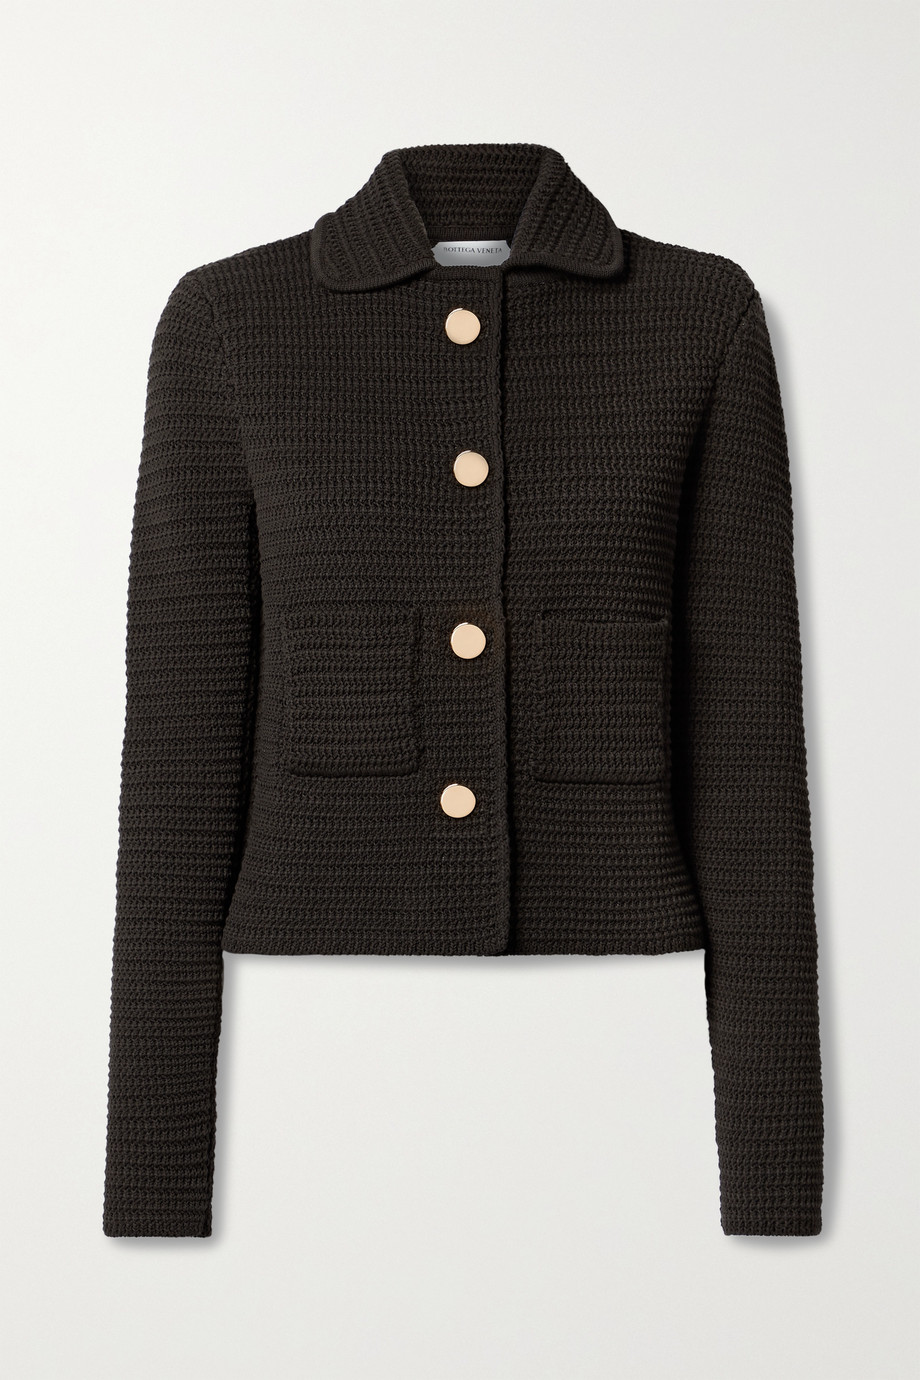 Bottega Veneta Crocheted cotton-blend jacket